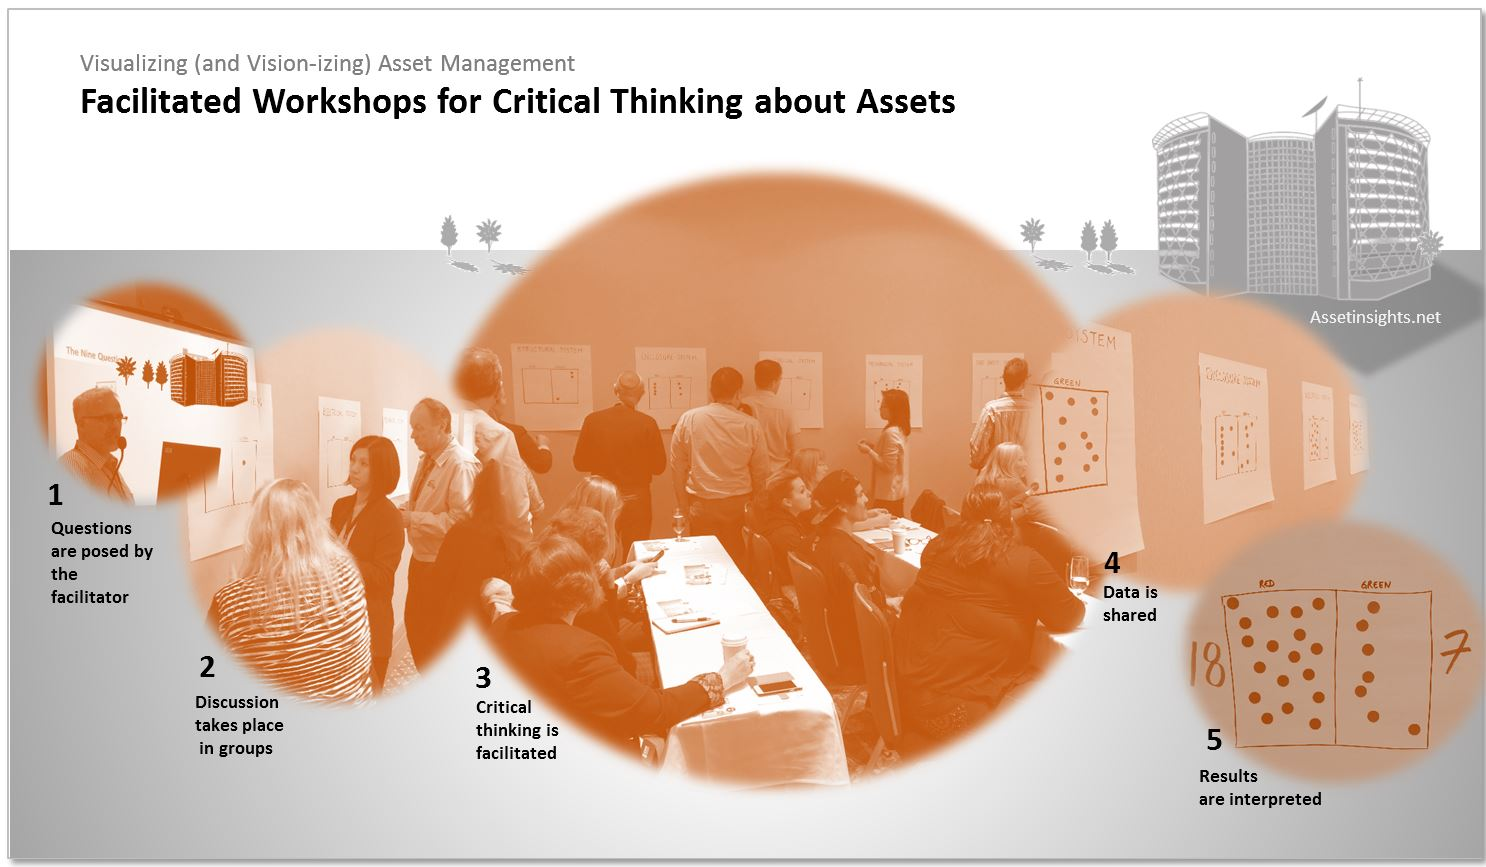 A facilitated workshop of asset owners, managers and operators intended to generate critical thinking around asset monitoring, performance and evaluation